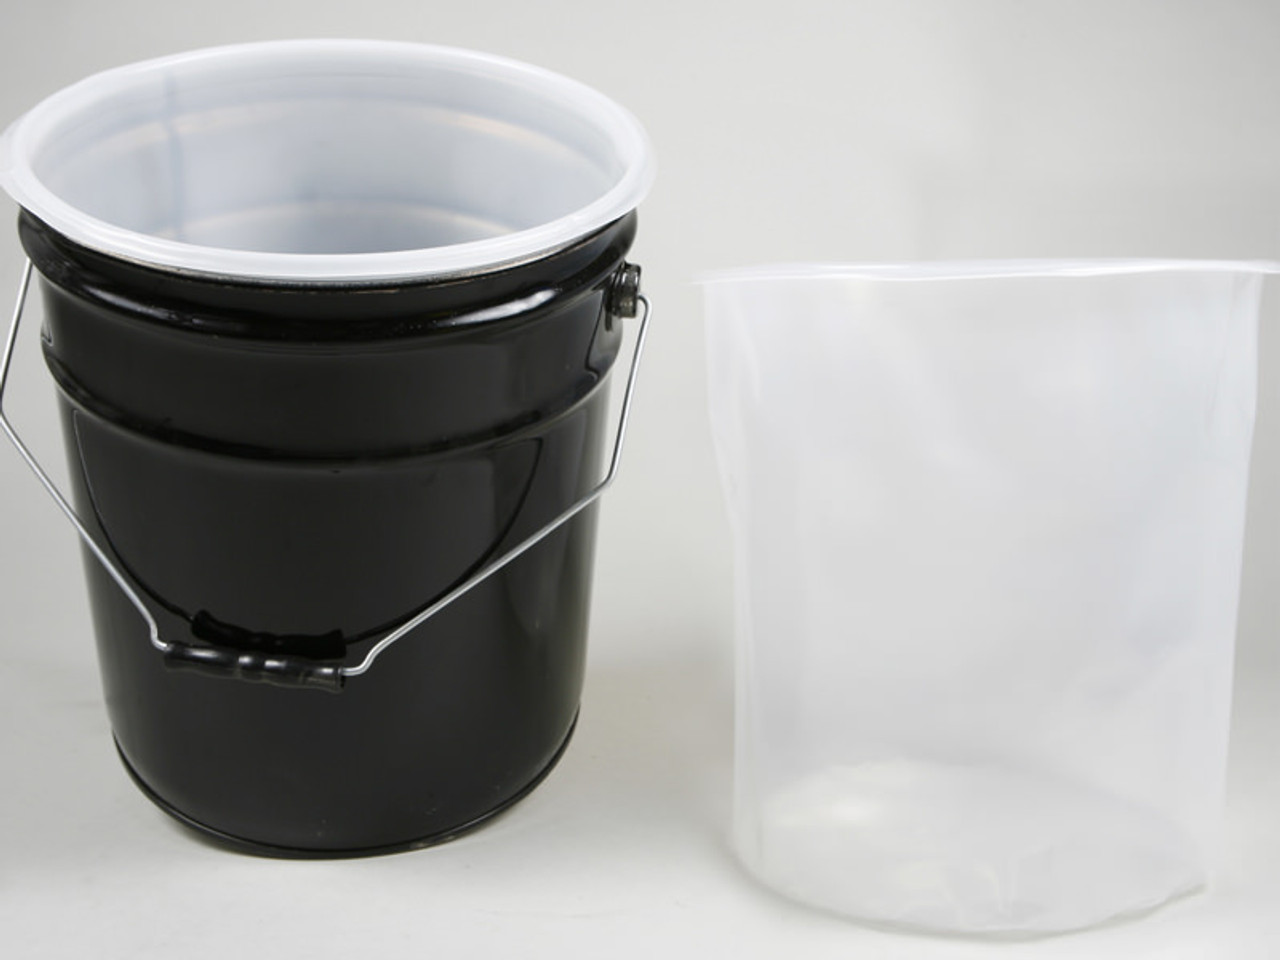 5 GALLON HDPE LINER FOR PLASTIC OR STEEL PAILS 15 MIL